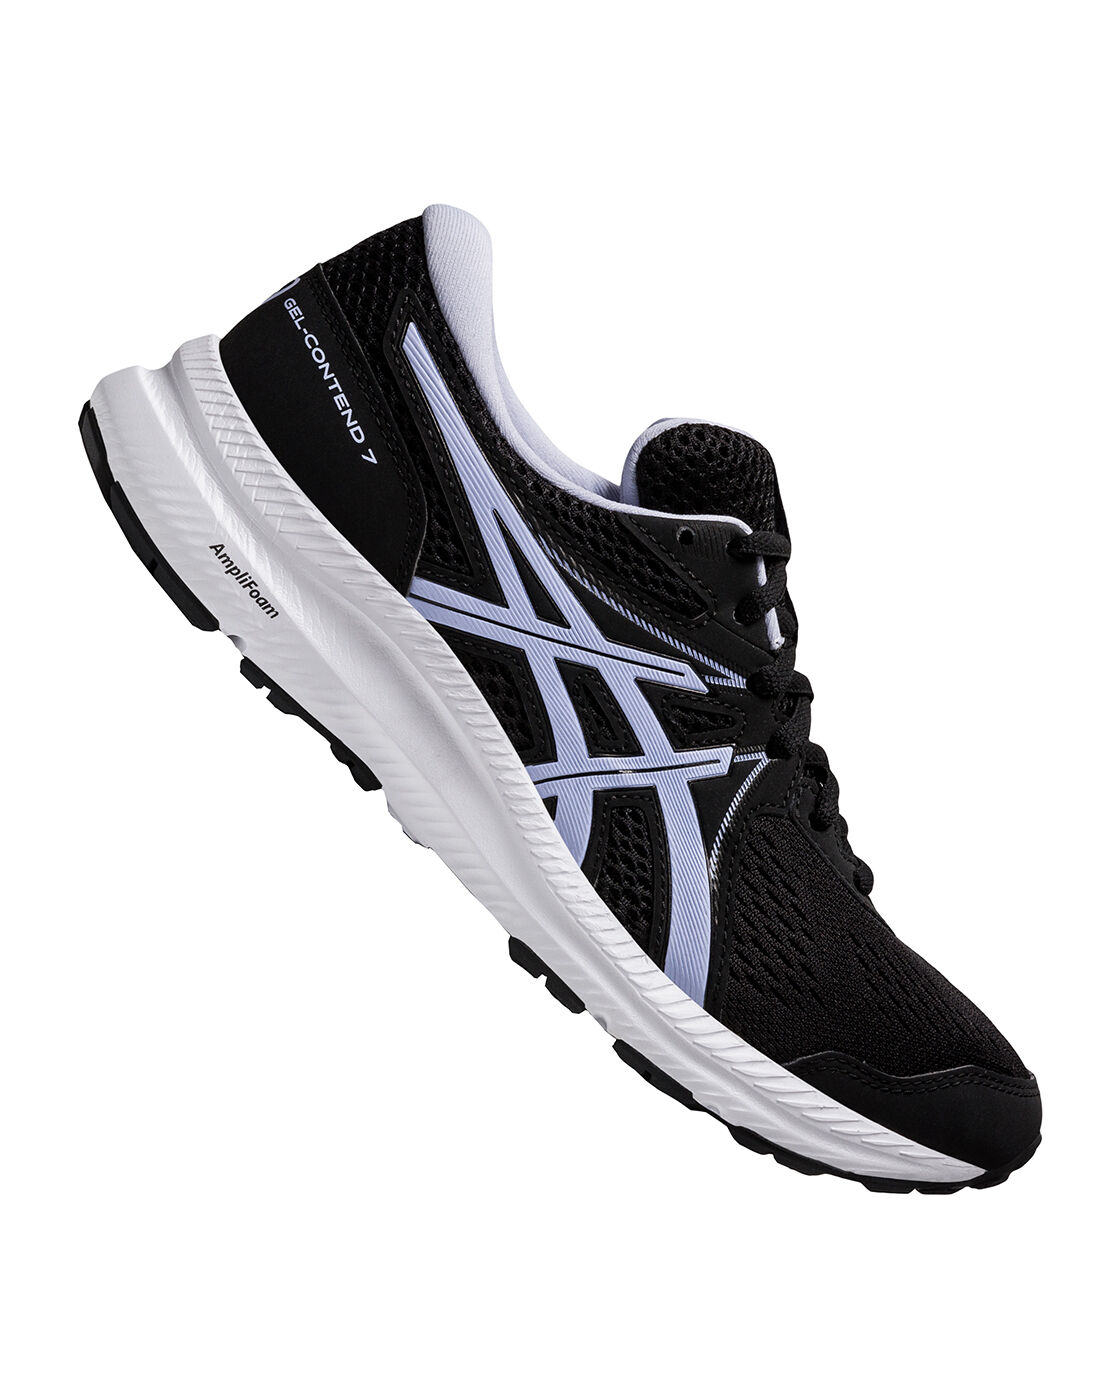 Asics Womens Gel-Contend 7 - Black | nike air force 1 femme paypal ...